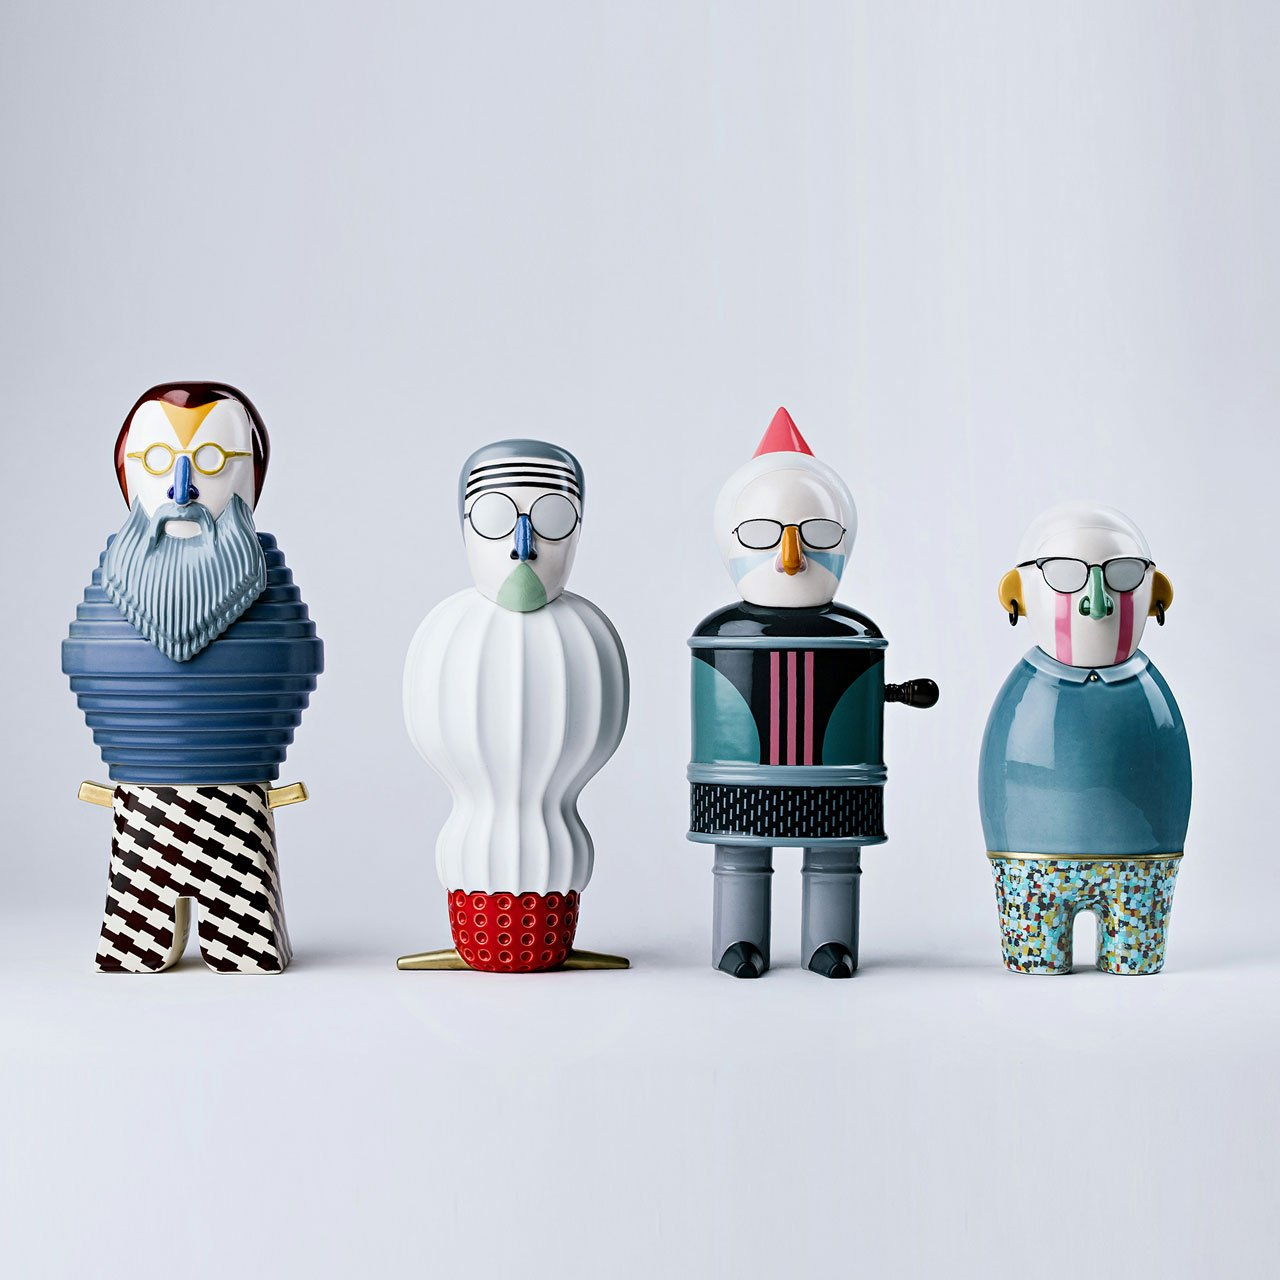 From left to right: Michele De Lucchi, Achille Castiglioni, Riccardo Dalisi and Alessandro Mendini from the Most Illustrious three-dimensional ceramic figure collection by Elena Salmistraro for Bosa Ceramiche.